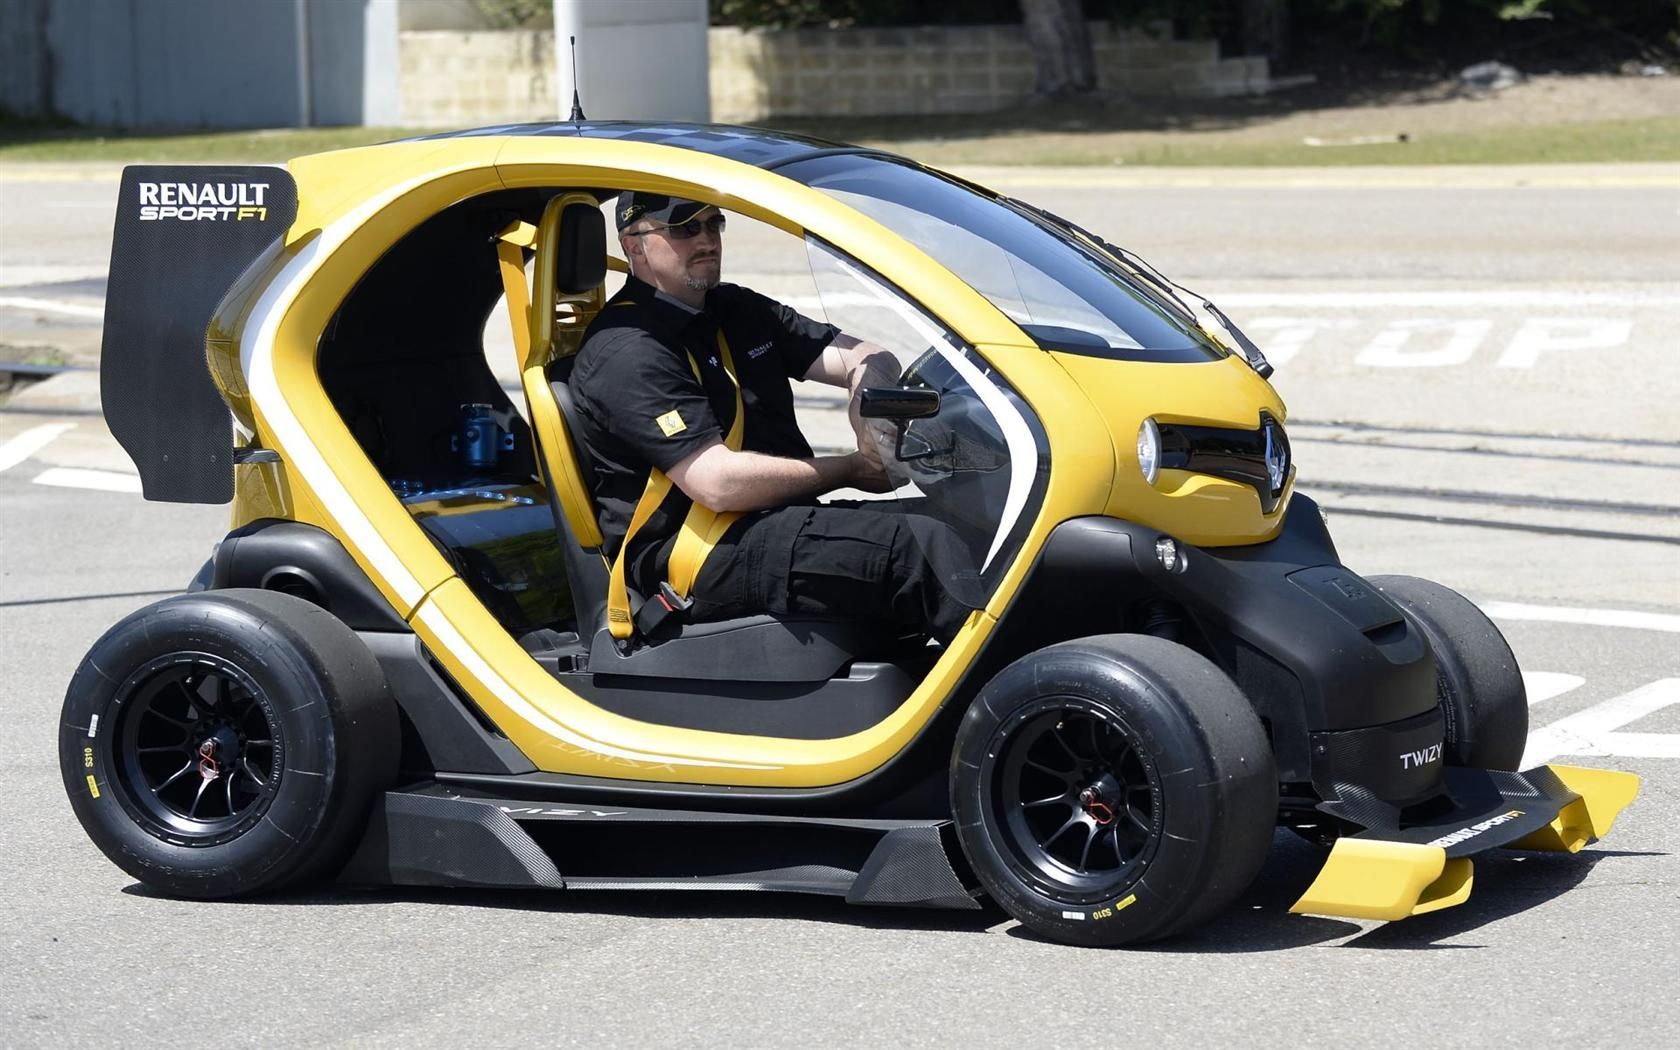 Renault Twizy Concept Cars Futuristic Cars City Car